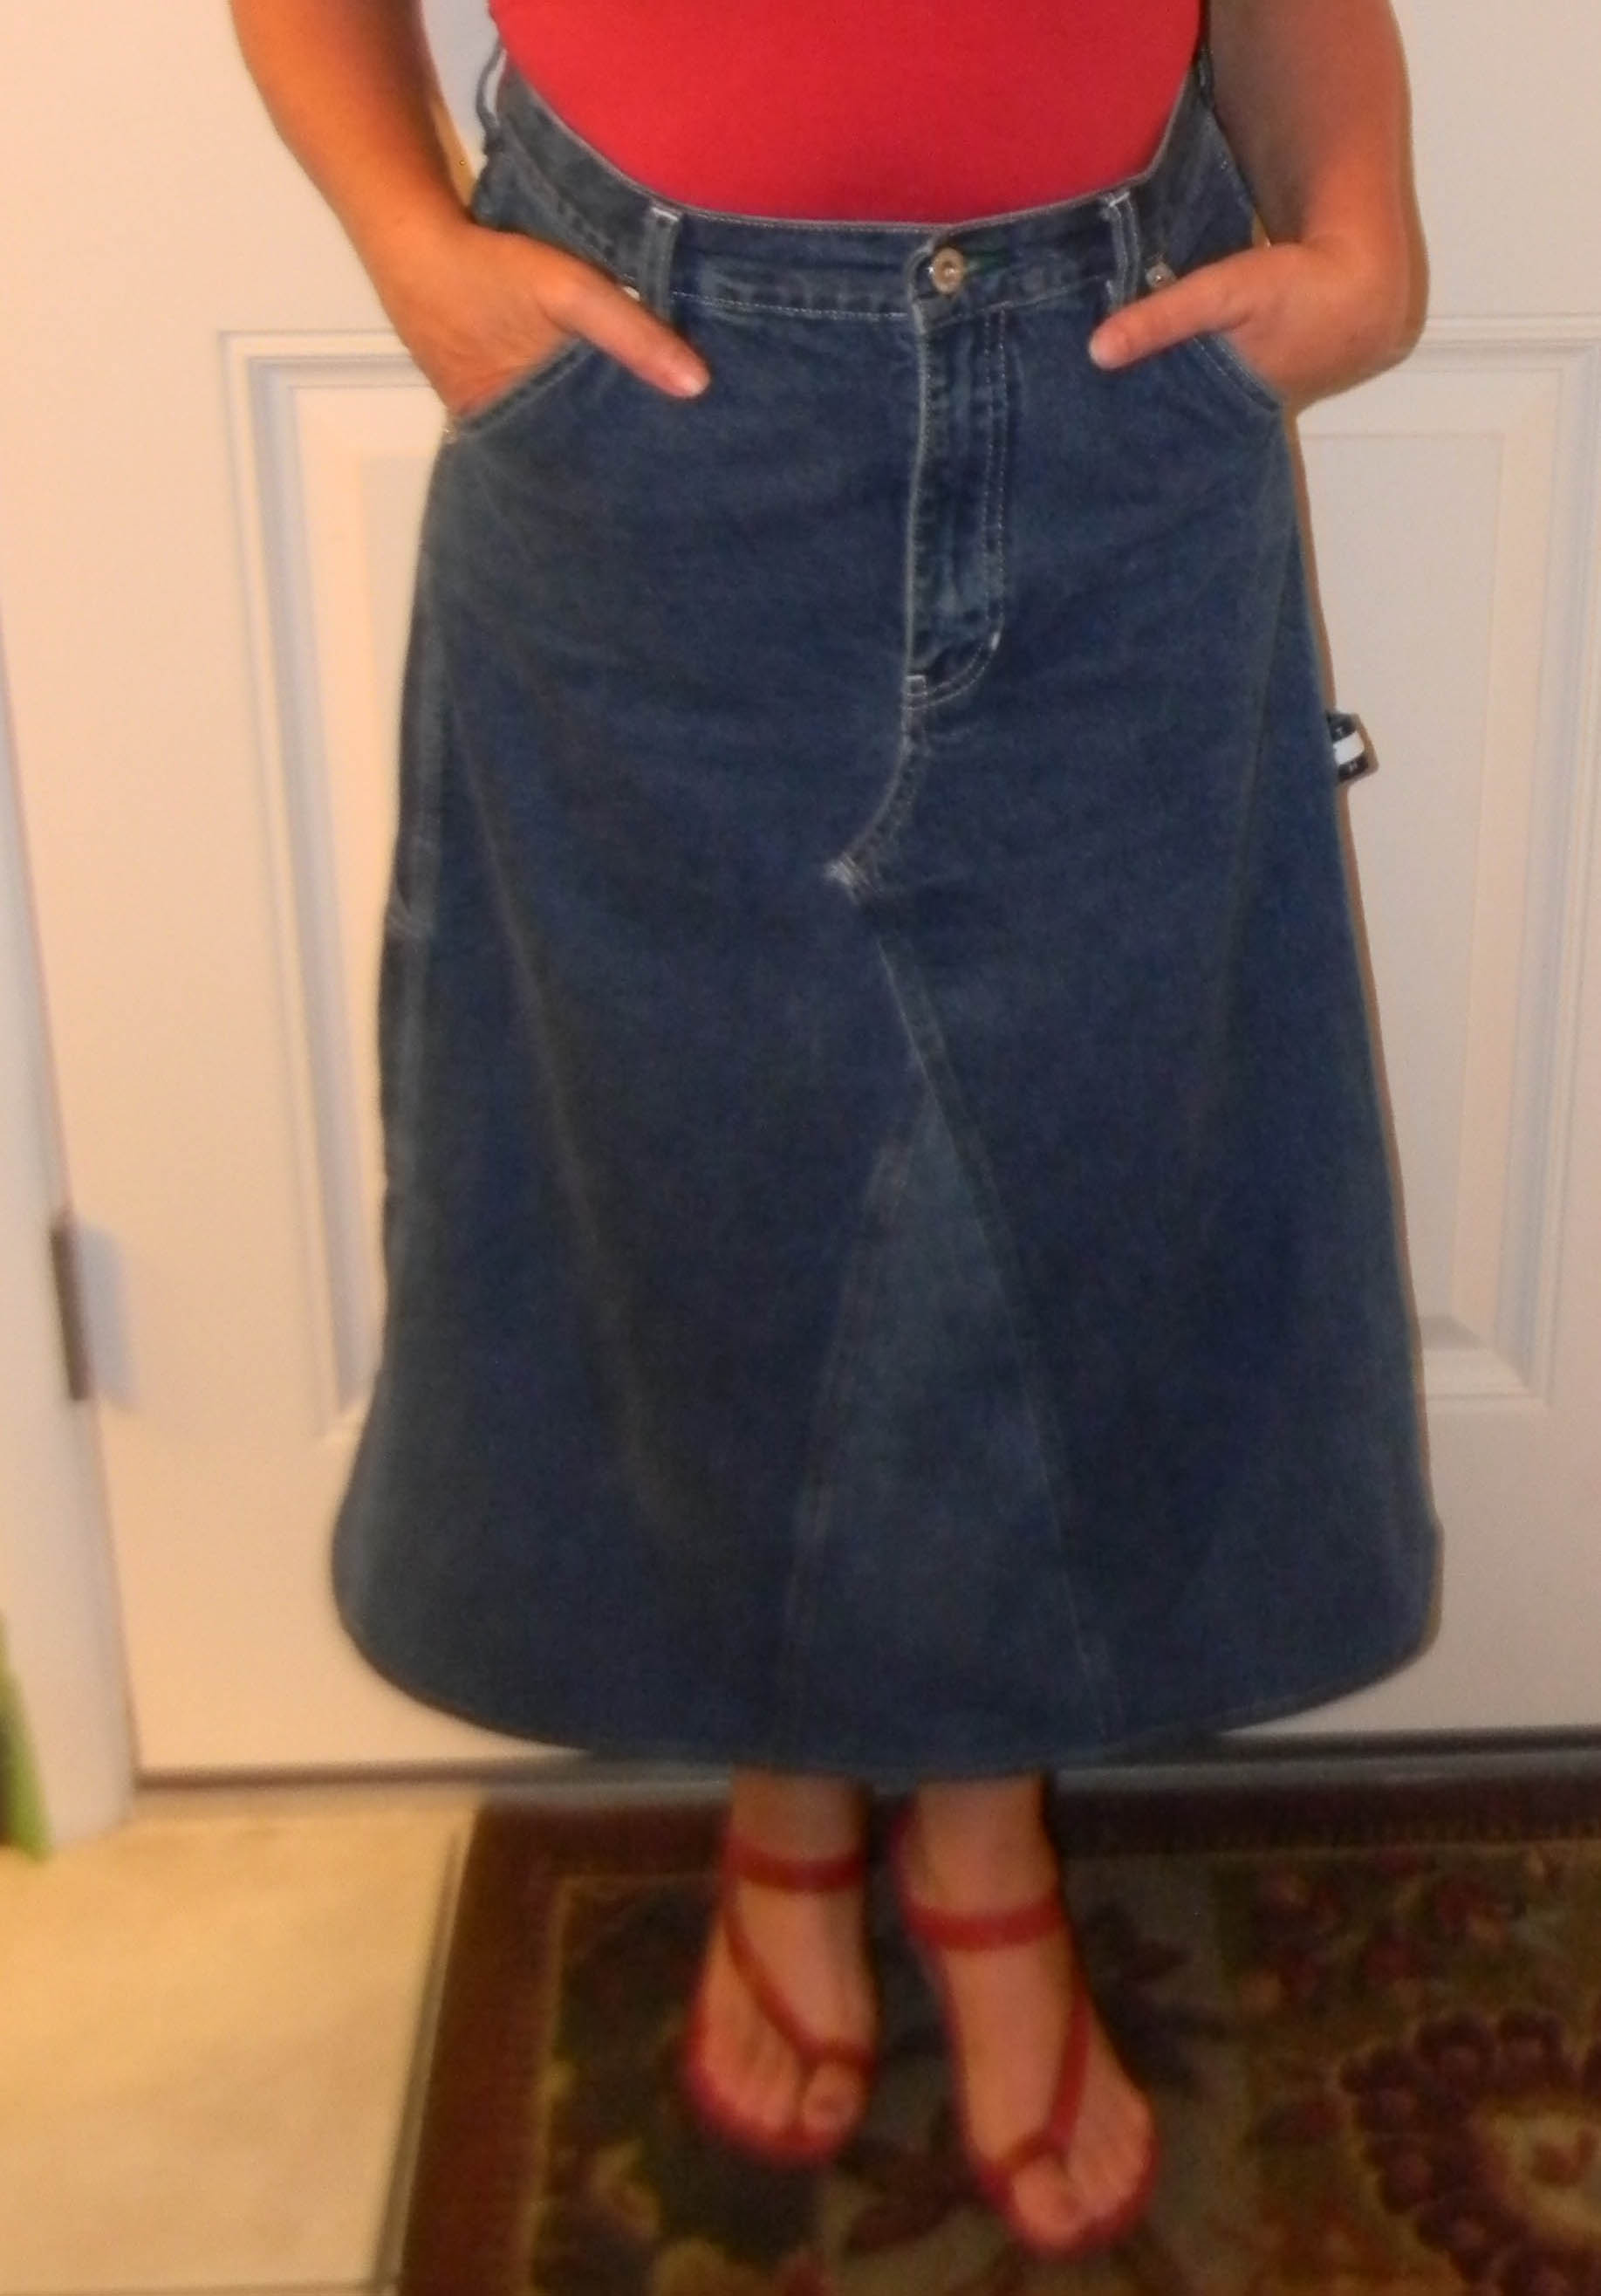 Skirt Made From Jeans